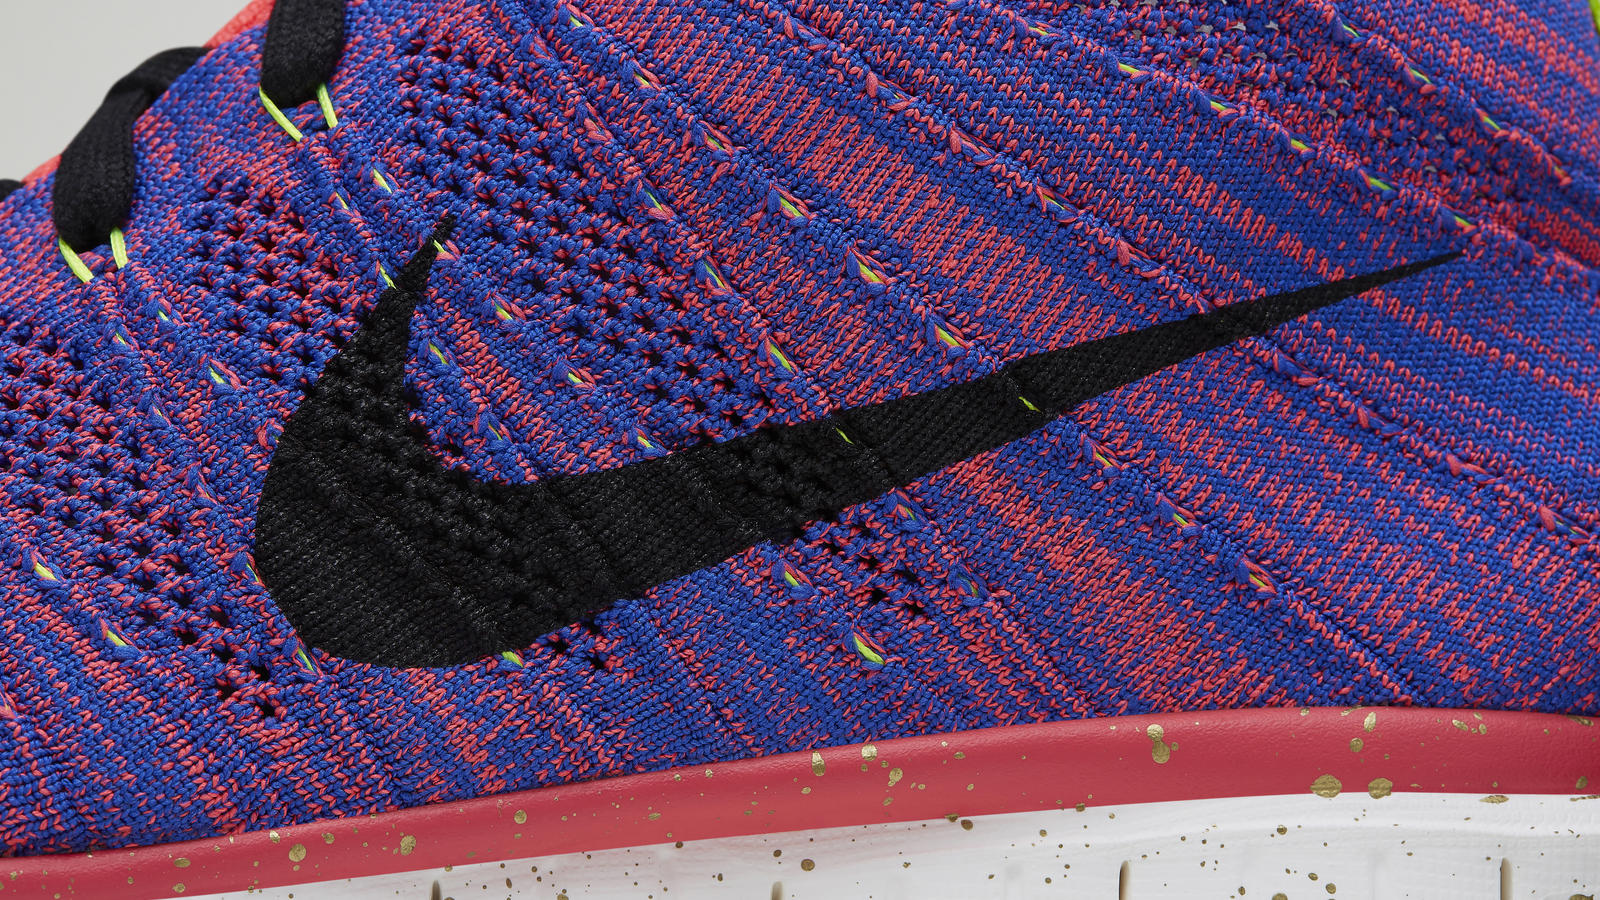 mercurial_freeflyknit(detail)